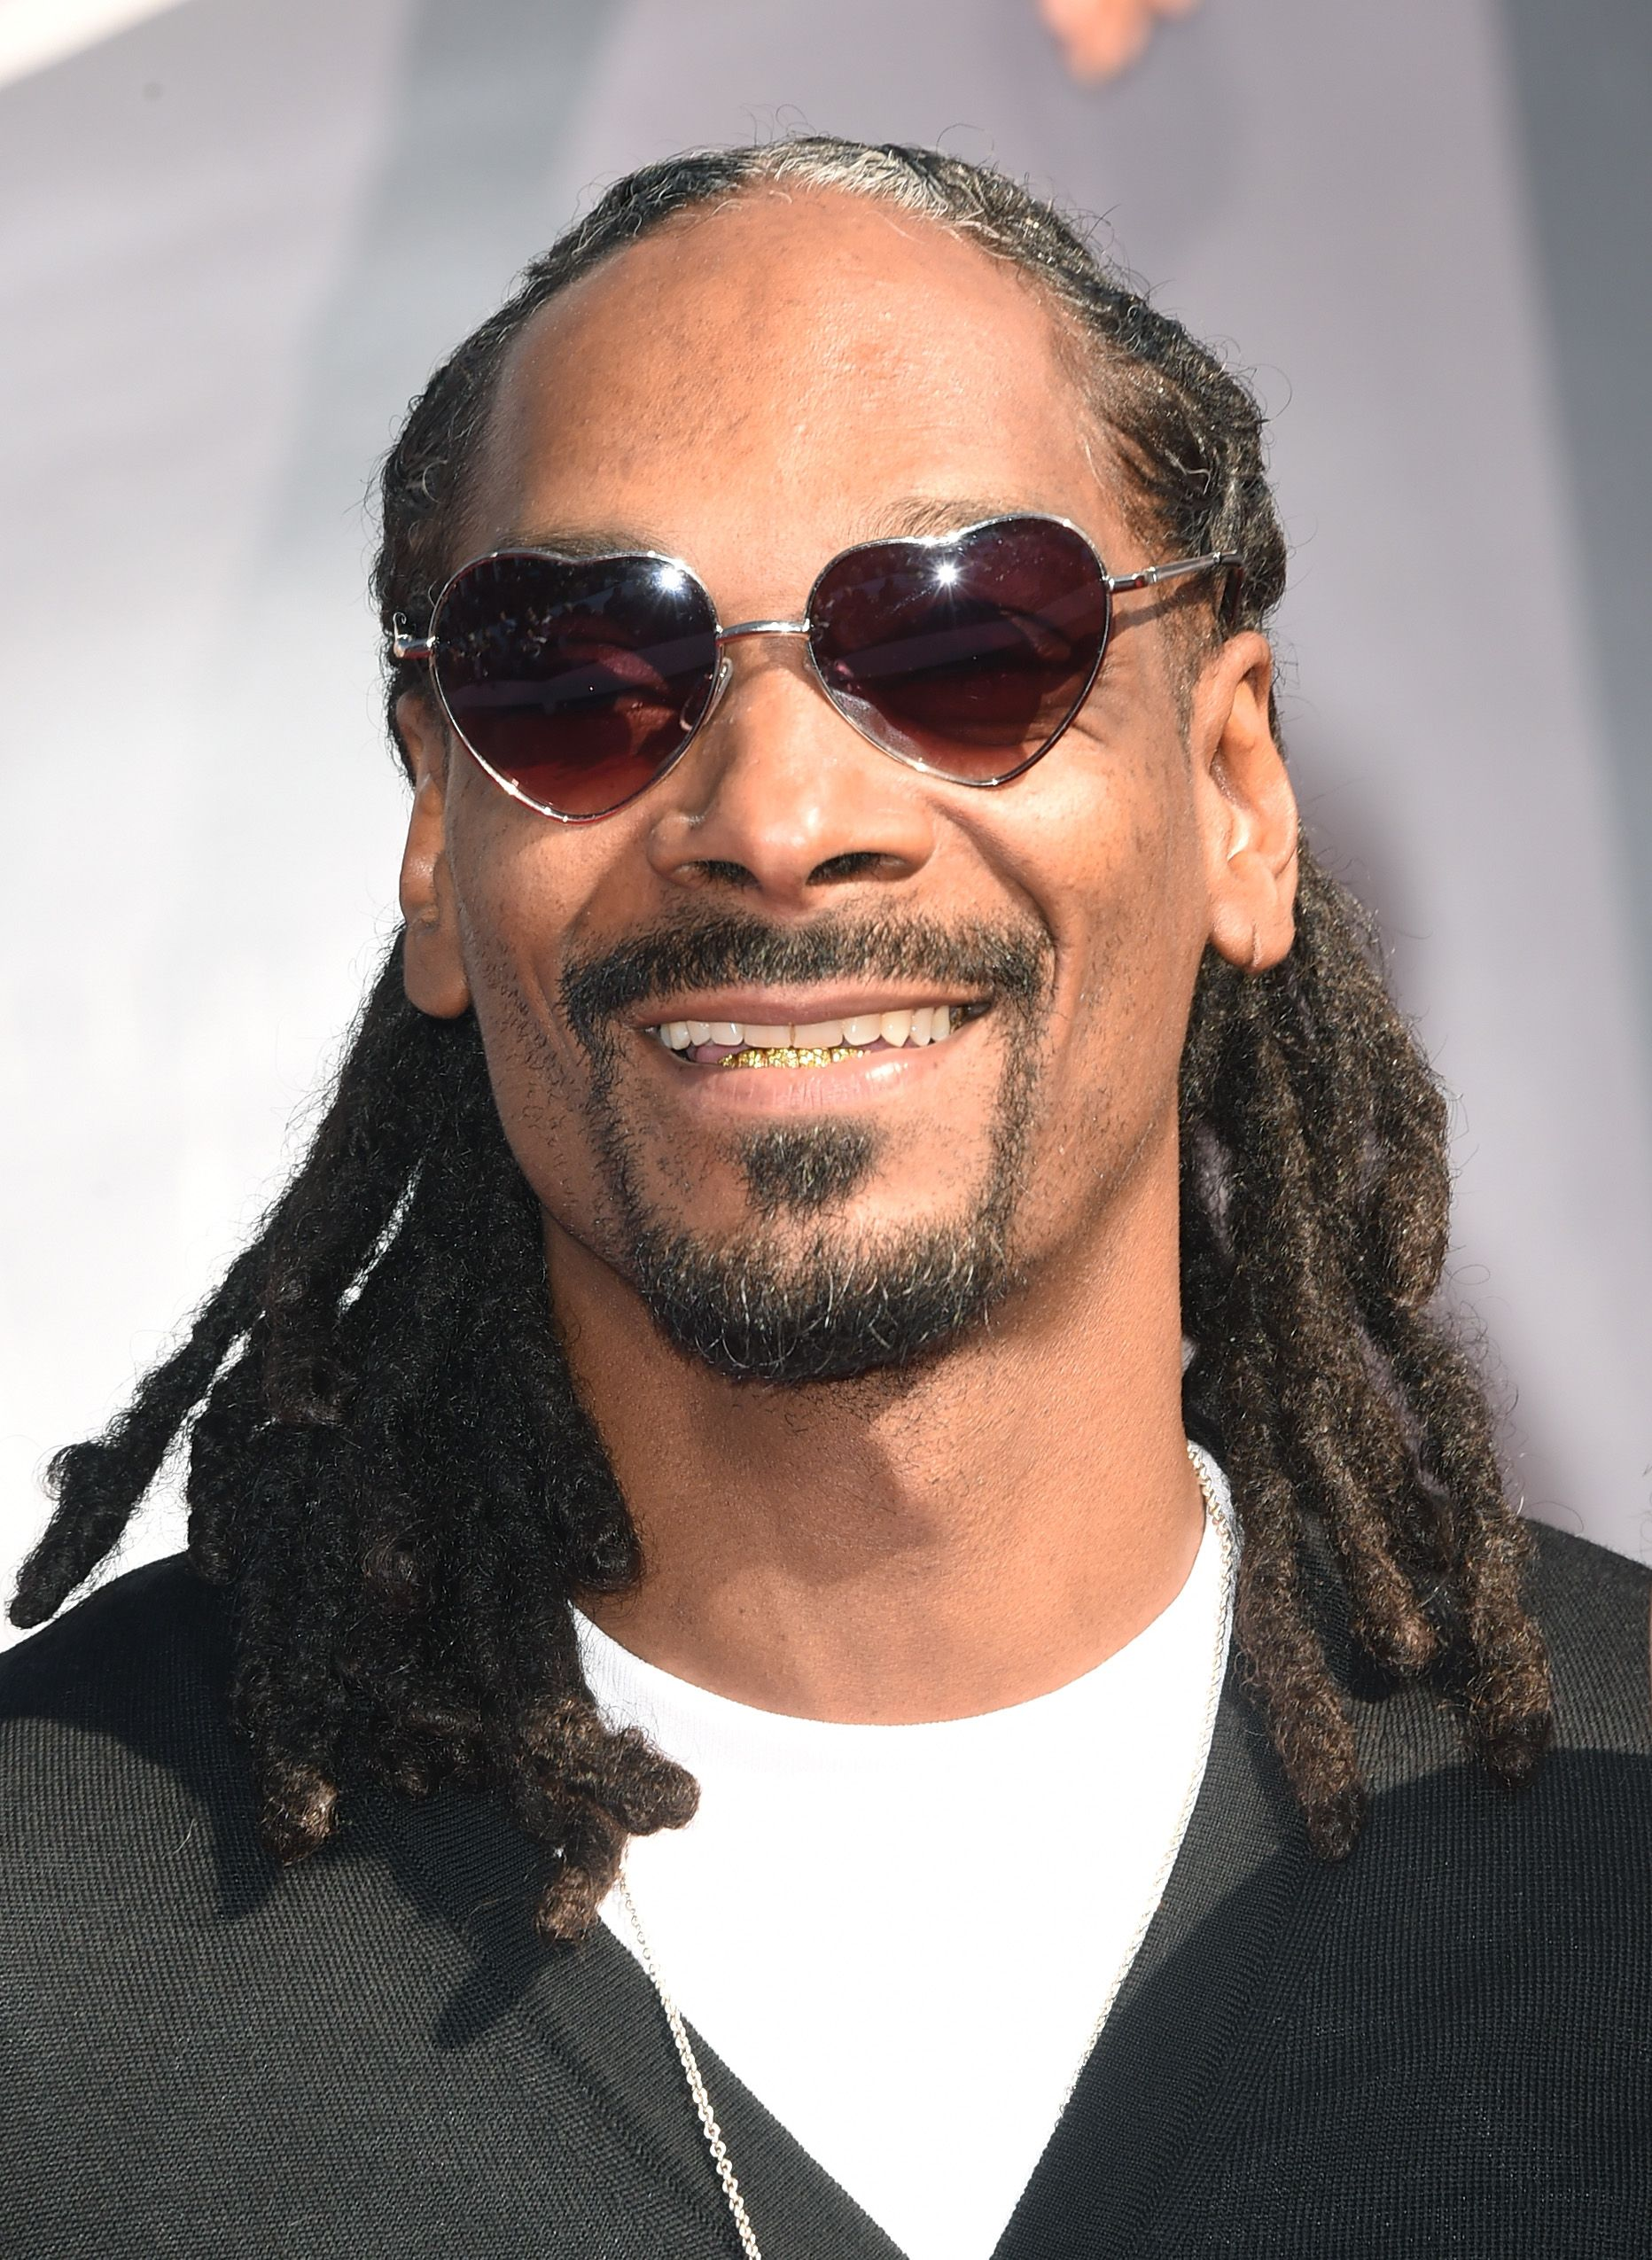 Snoop Dogg at the MTV Video Music Awards on August 24, 2014 in California.   Photo: Getty Images